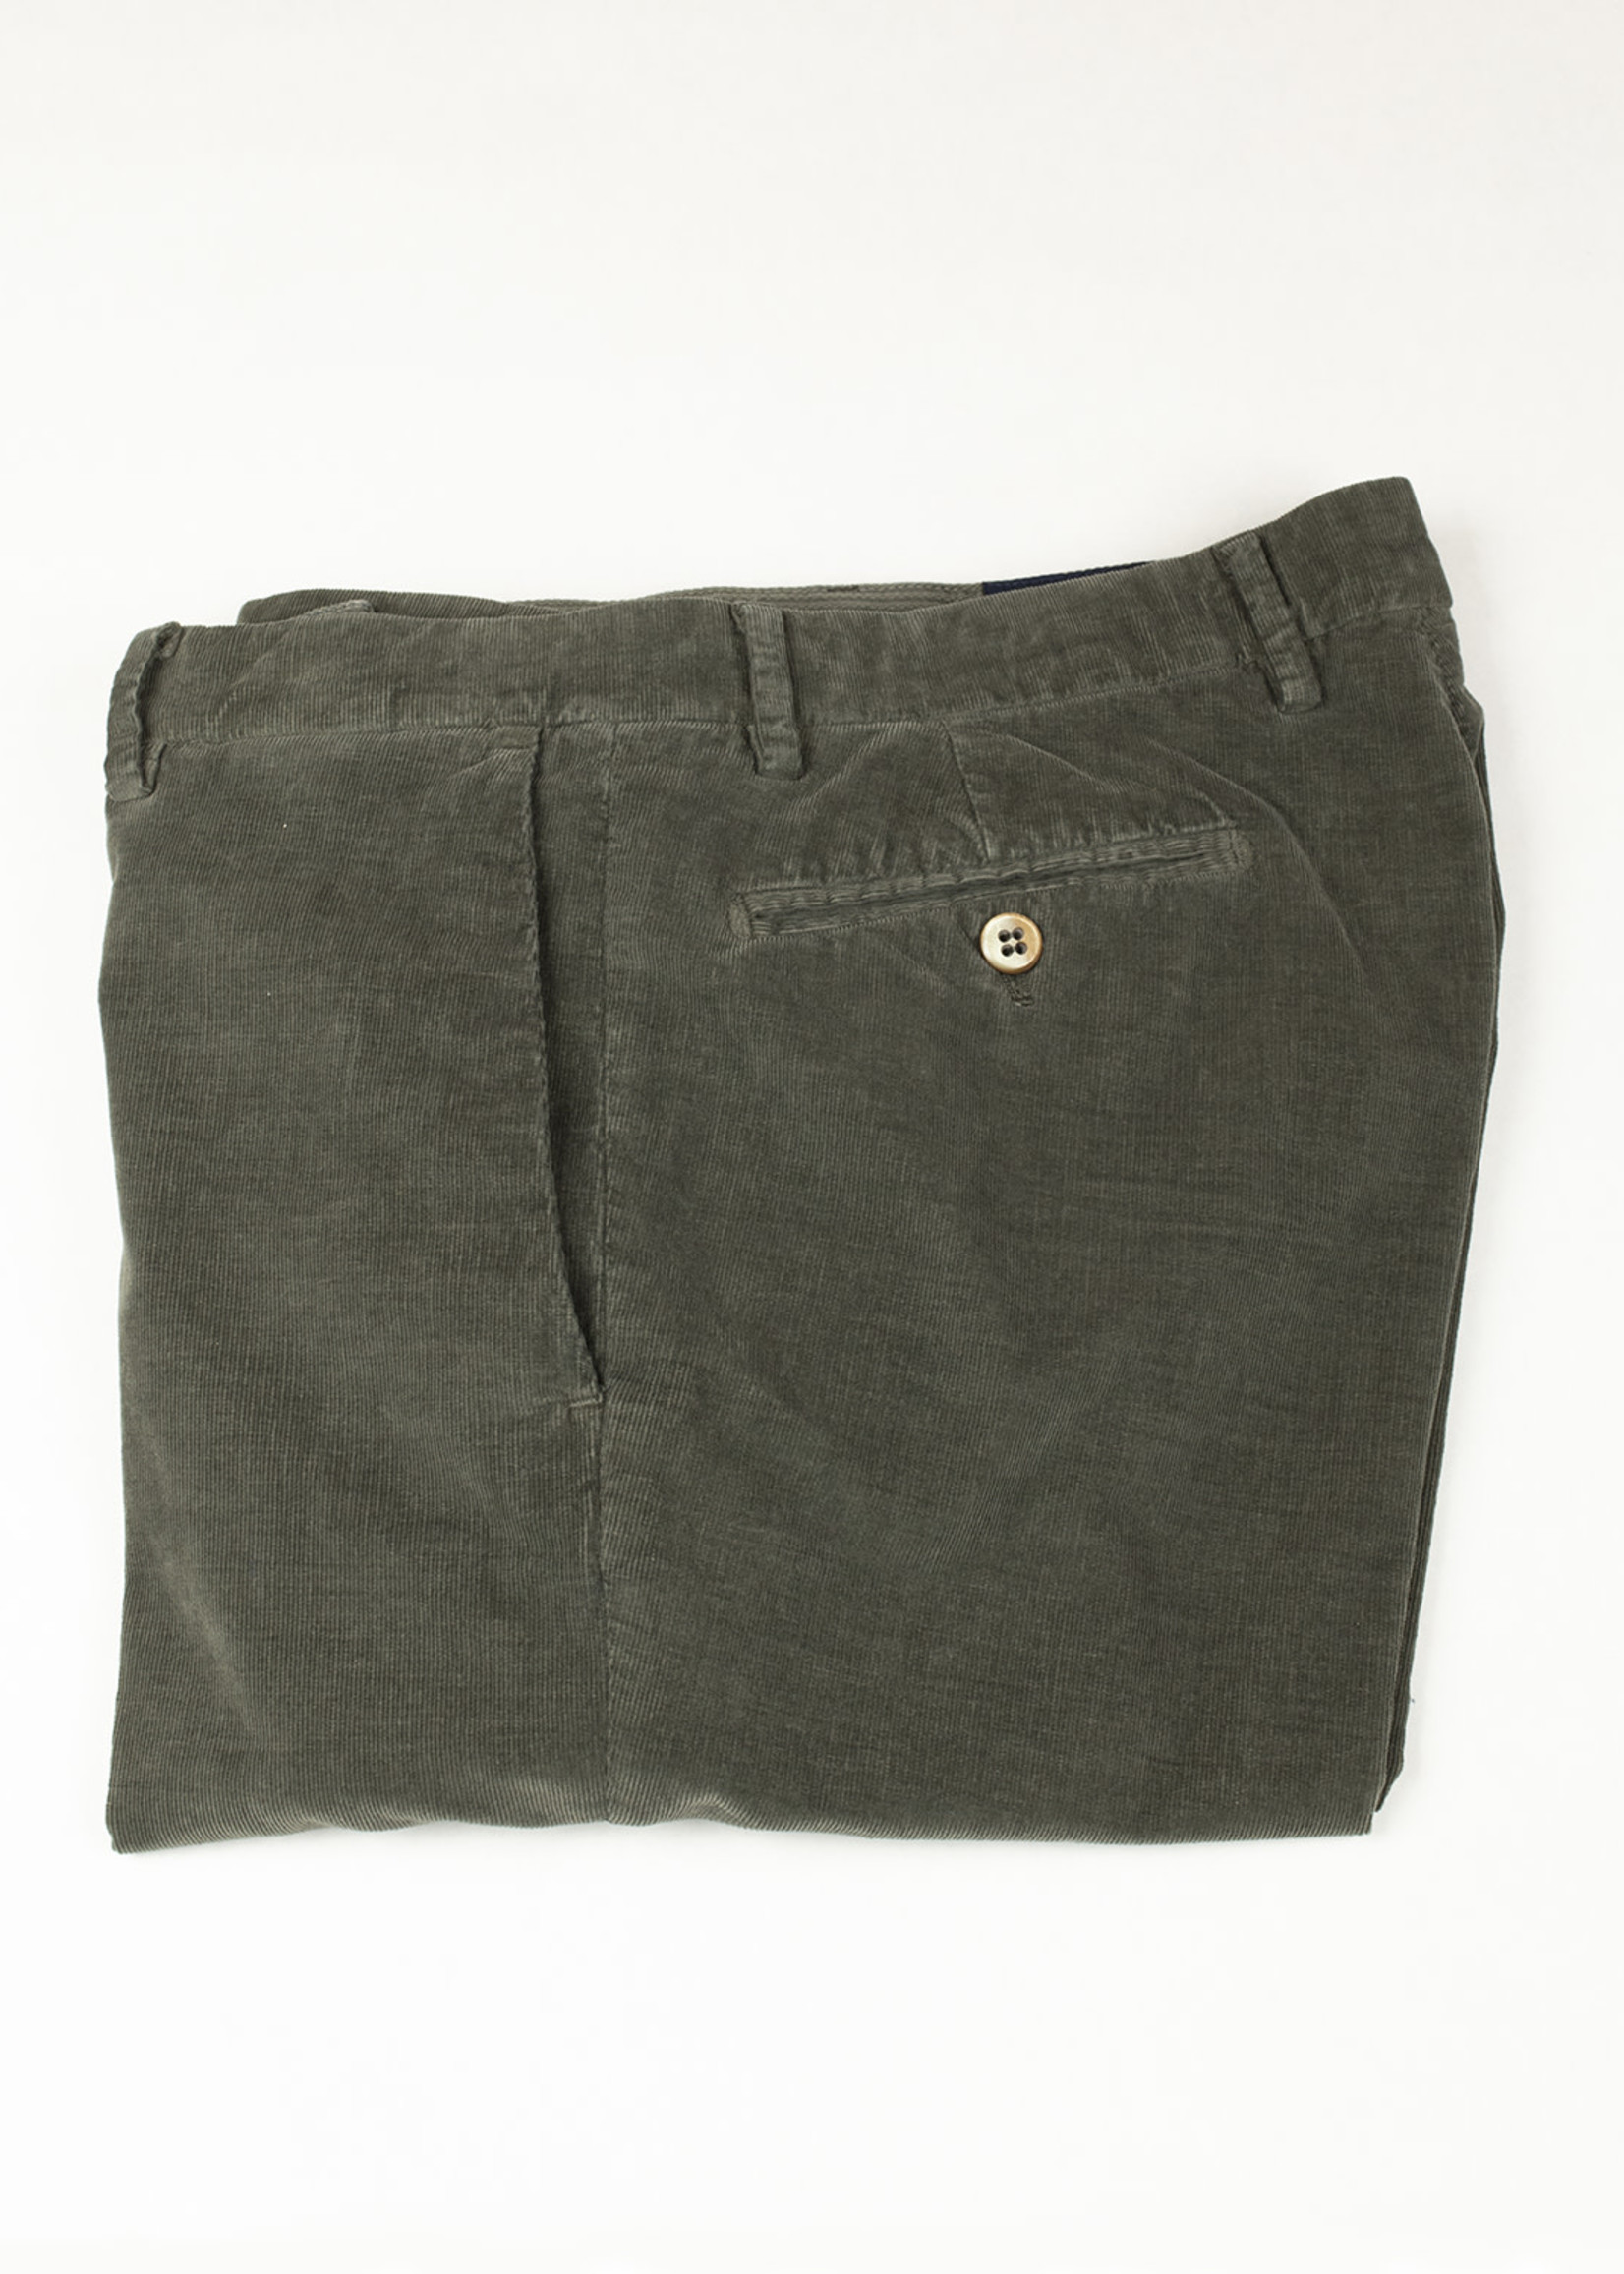 Mason's New York Olive Cotton Corduroy VBE011-053